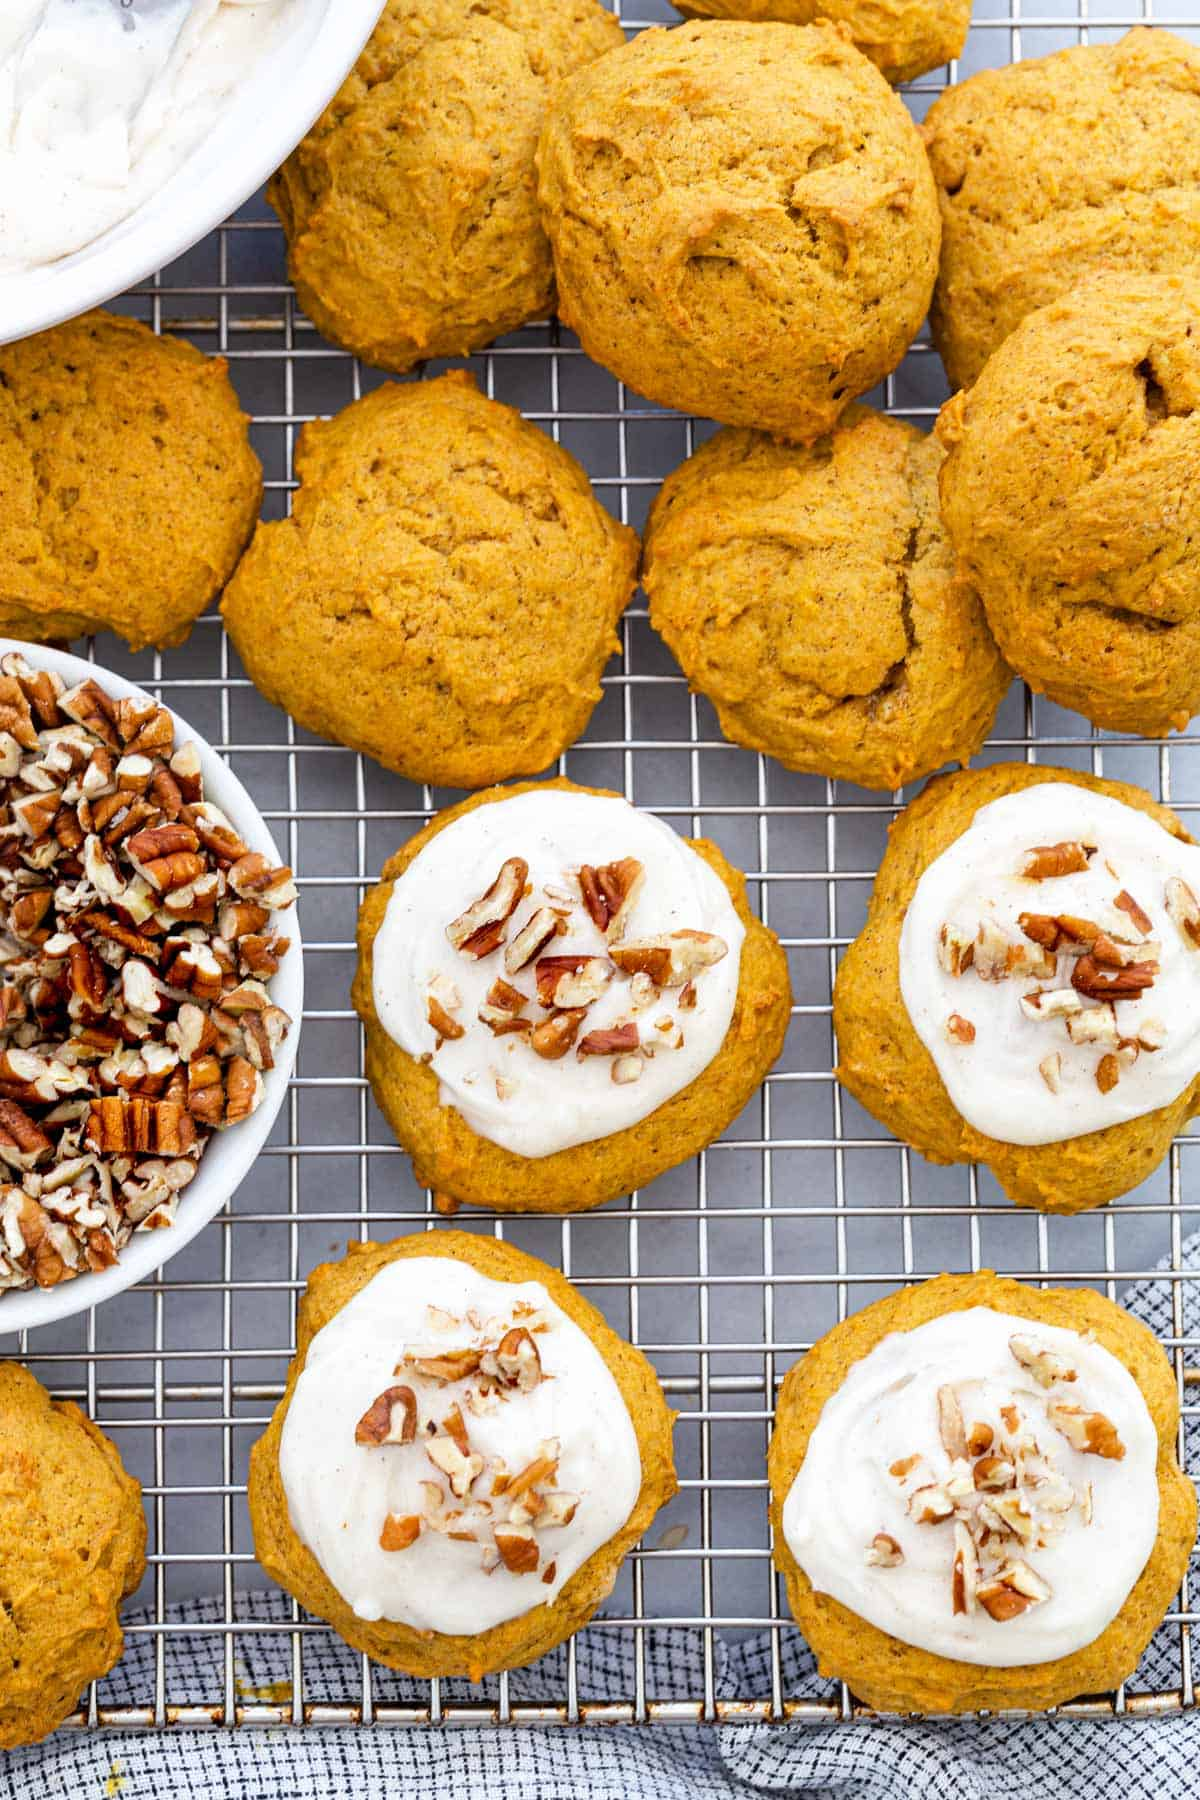 Pumpkin cookies topped with a smooth cream cheese frosting and chopped pecans. Pumpkin puree gives these treats their characteristic orange color. #pumpkin #pumpkincookies #fallrecipes